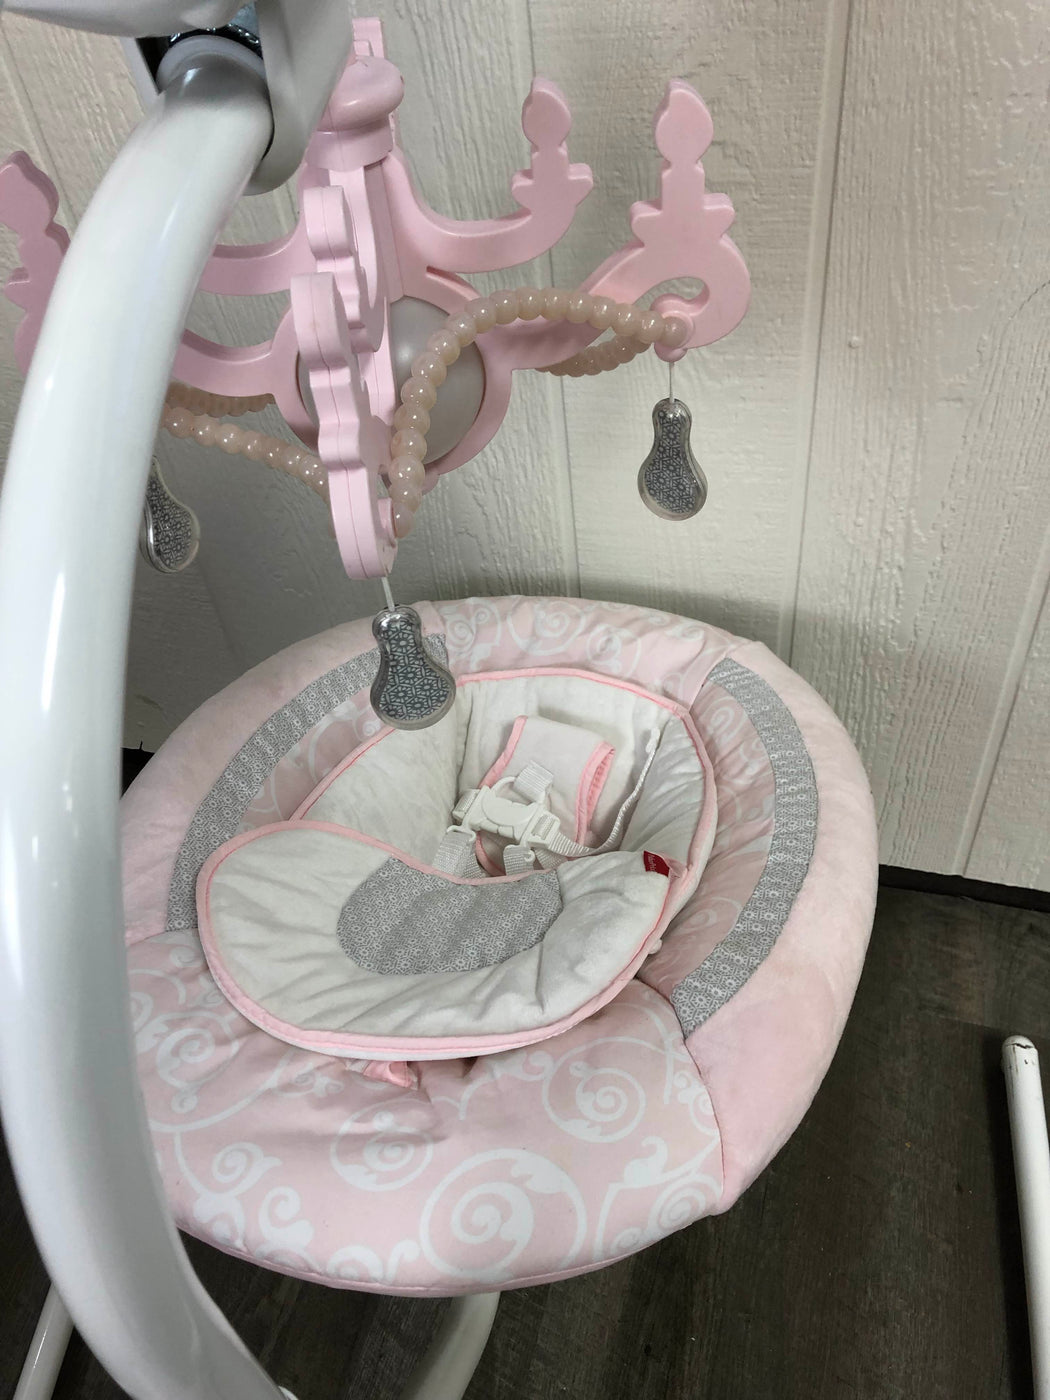 Fisher Price Cradle 'n Swing, Rose Chandelier